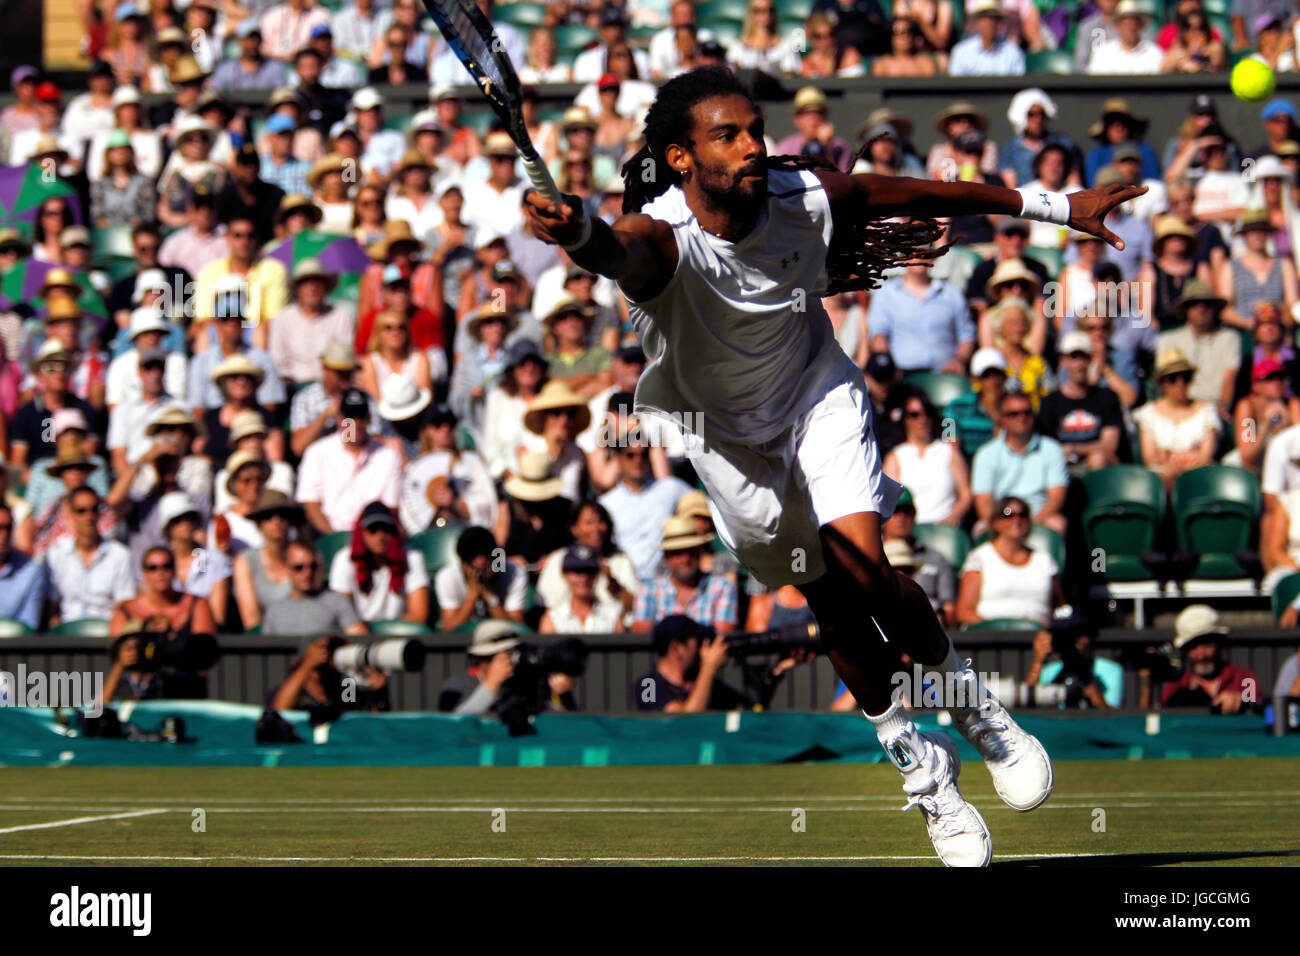 London, UK. 05th July, 2017. London, 5 July, 2017 - Dustin Brown of Germany reaches for a volley during his second - Stock Image